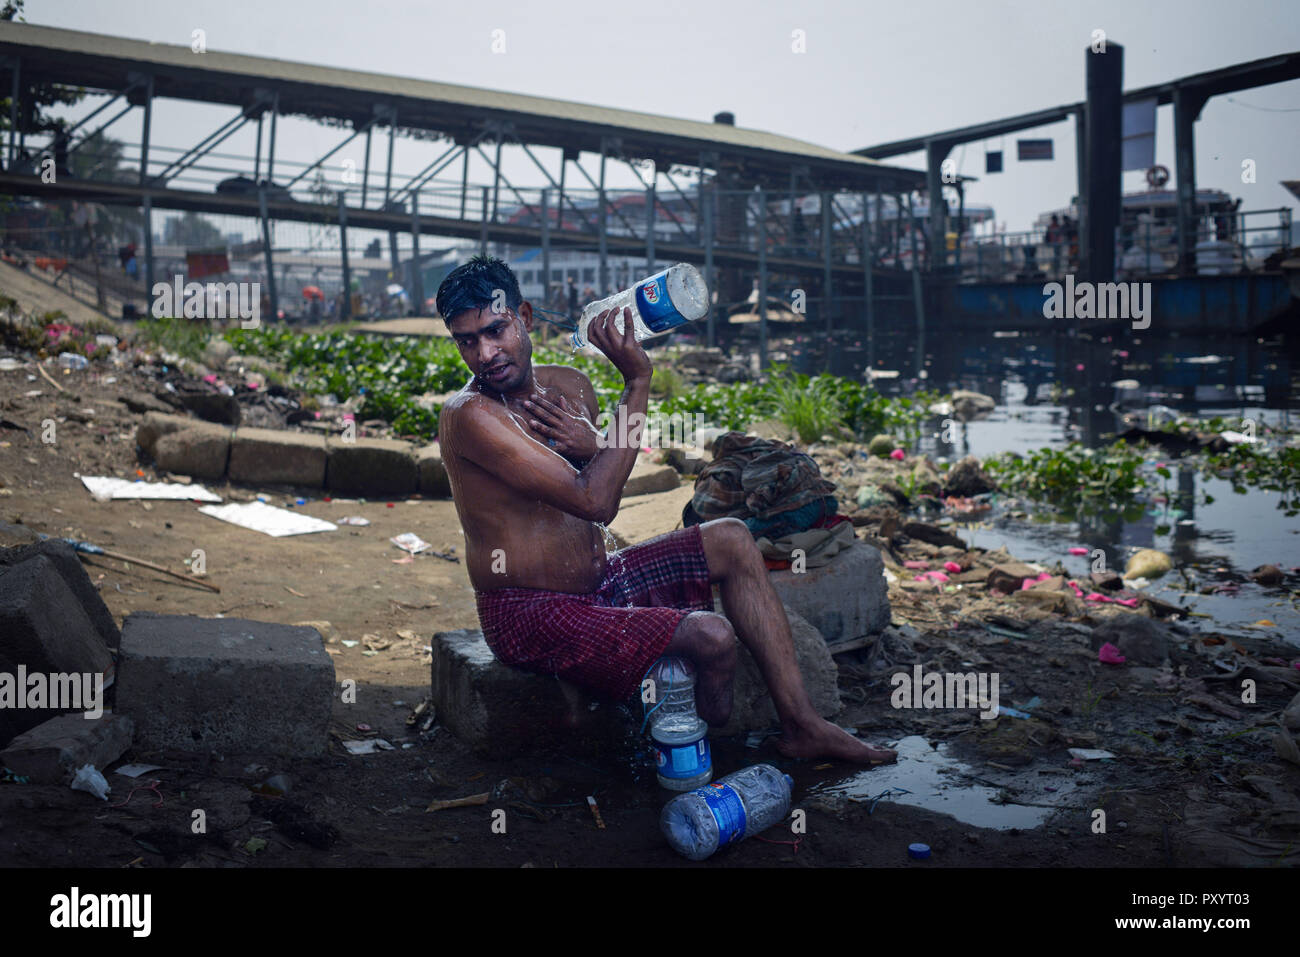 Dhaka, Dhaka, Bangladesh. 21st Mar, 2018. An uniped man seen taking a bath with some bottle of water beside Buriganga river, the water of the river becoming undesirable everyday. Credit: Ziaul Haque Oisharjh/SOPA Images/ZUMA Wire/Alamy Live News - Stock Image